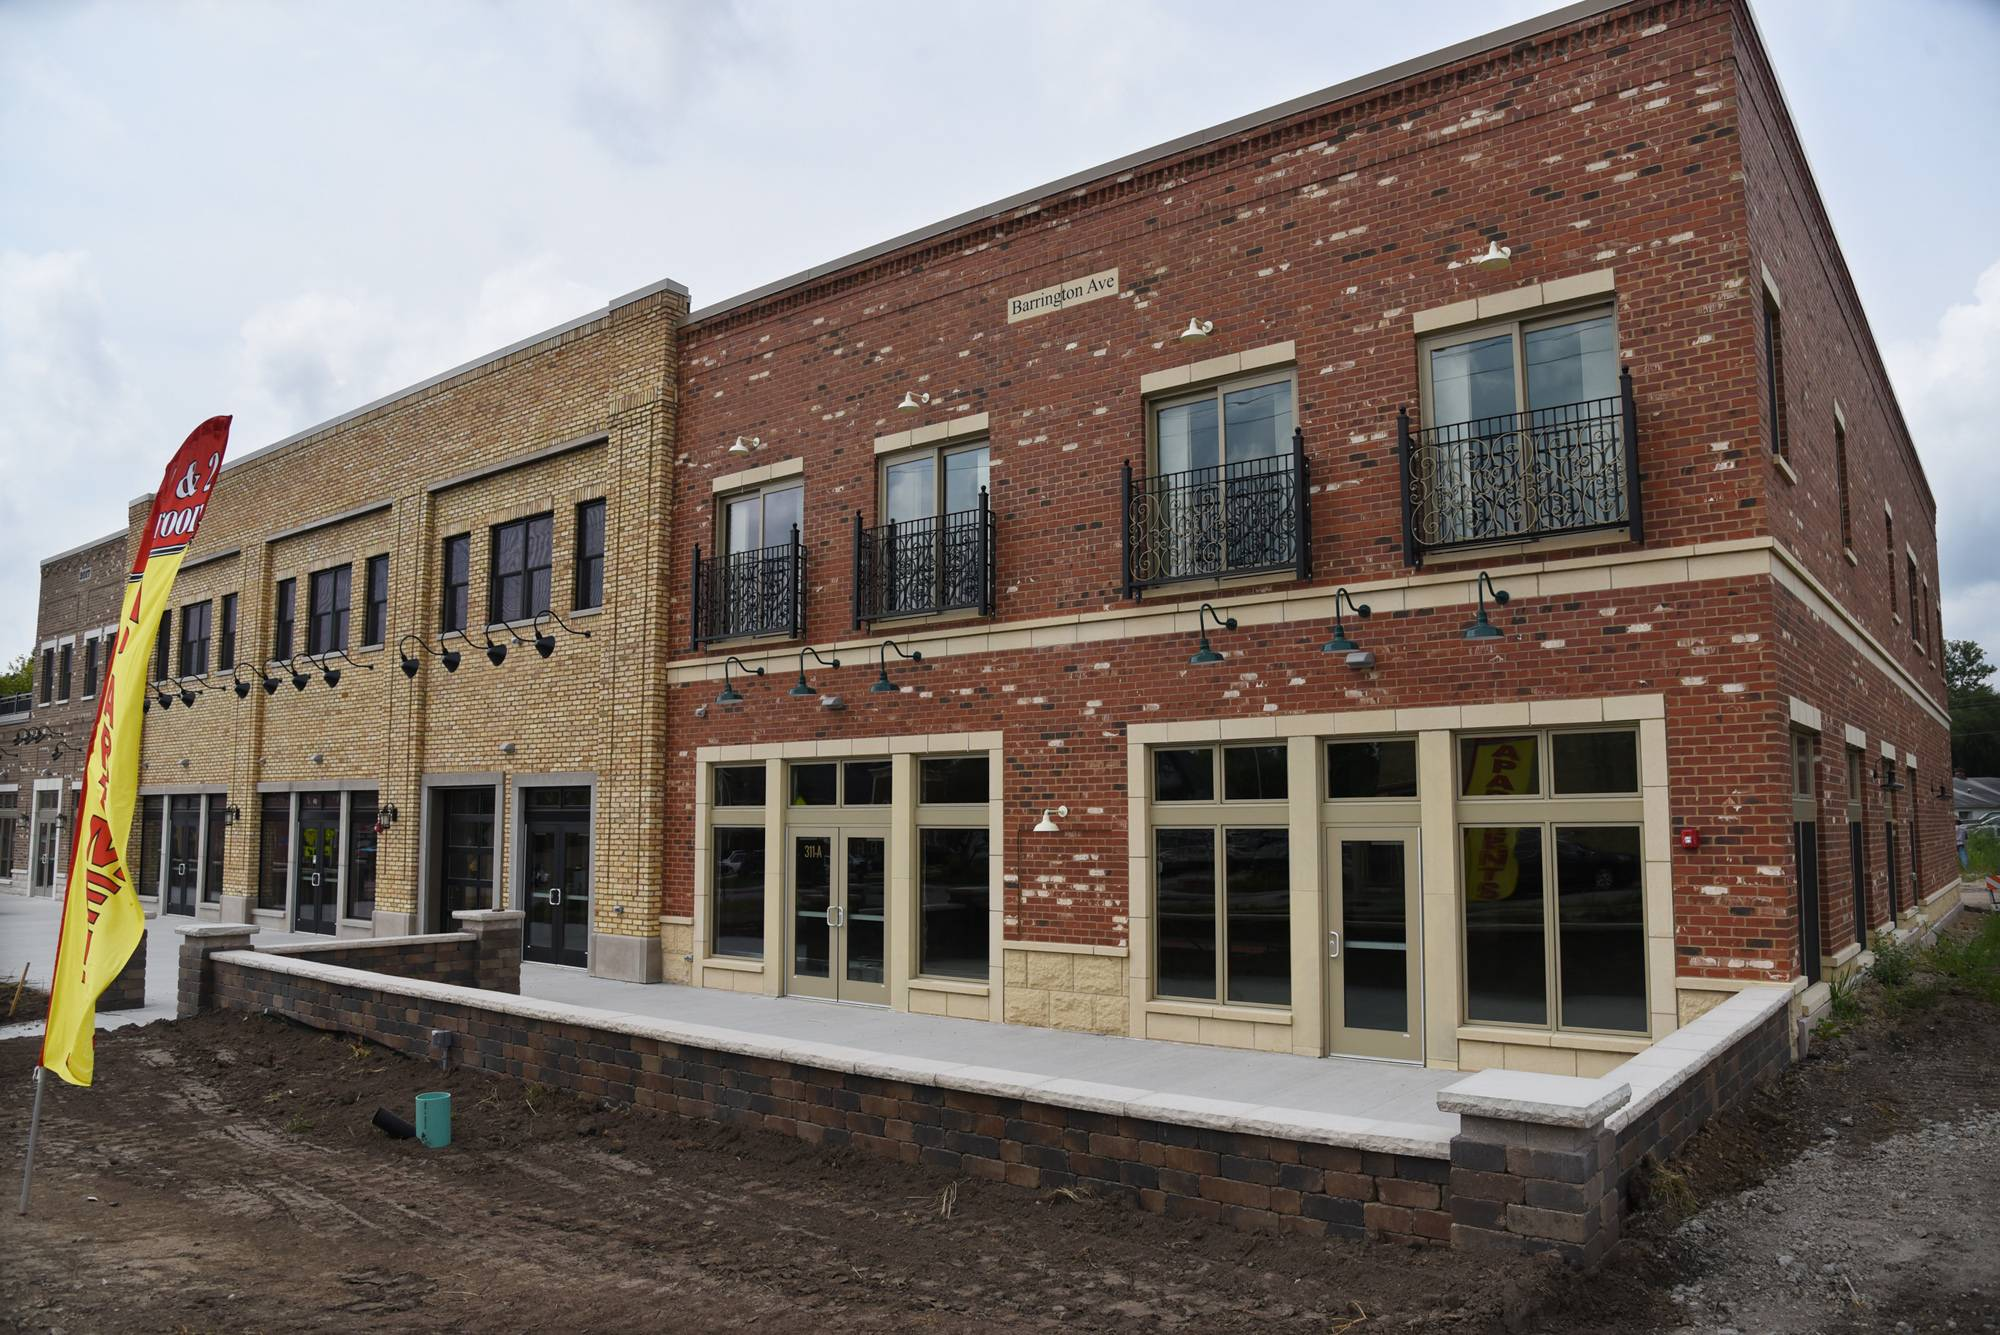 The new $4 million mixed-use development at 311 Barrington Ave., East Dundee, includes loft-style apartments upstairs and first-floor retail space.